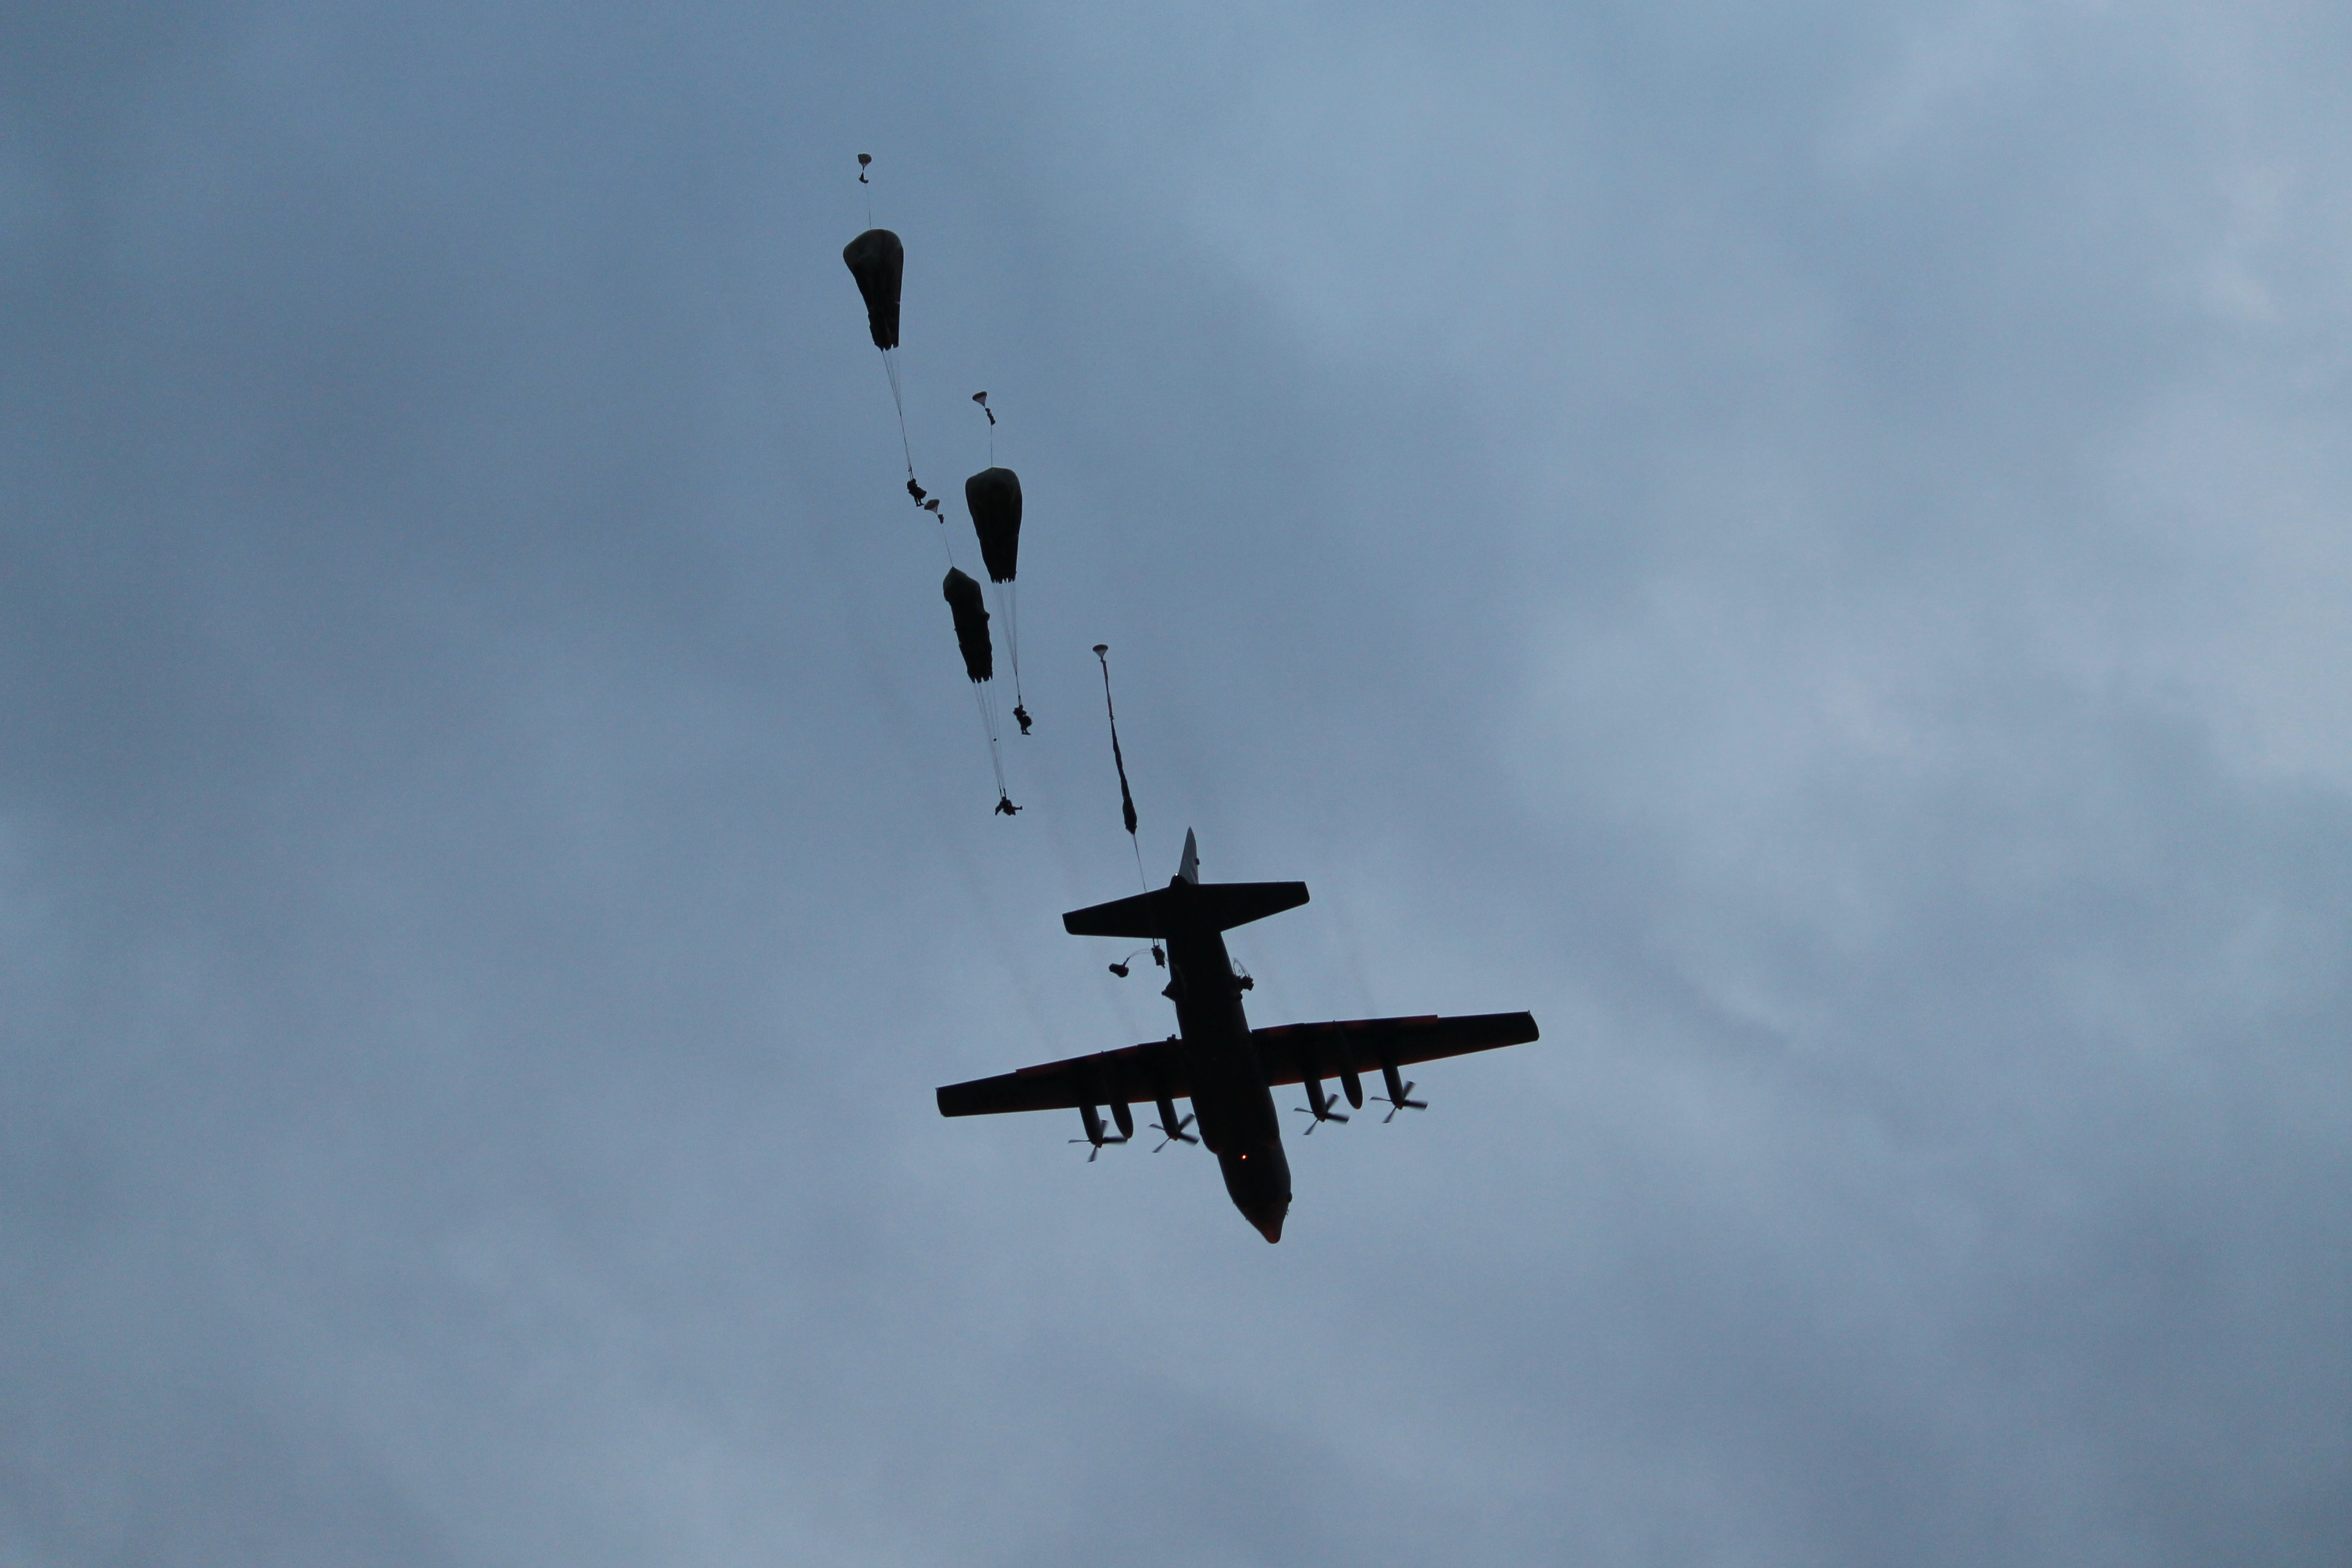 A C-130 flies overhead as paratroopers begin to jump out. The 13 aircraft used in Swift Response deposited hundreds of paratroopers at Bezmer over the course of roughly an hour. An estimated 1,000 paratroopers participated in Swift Response. (Jen Judson/Staff)